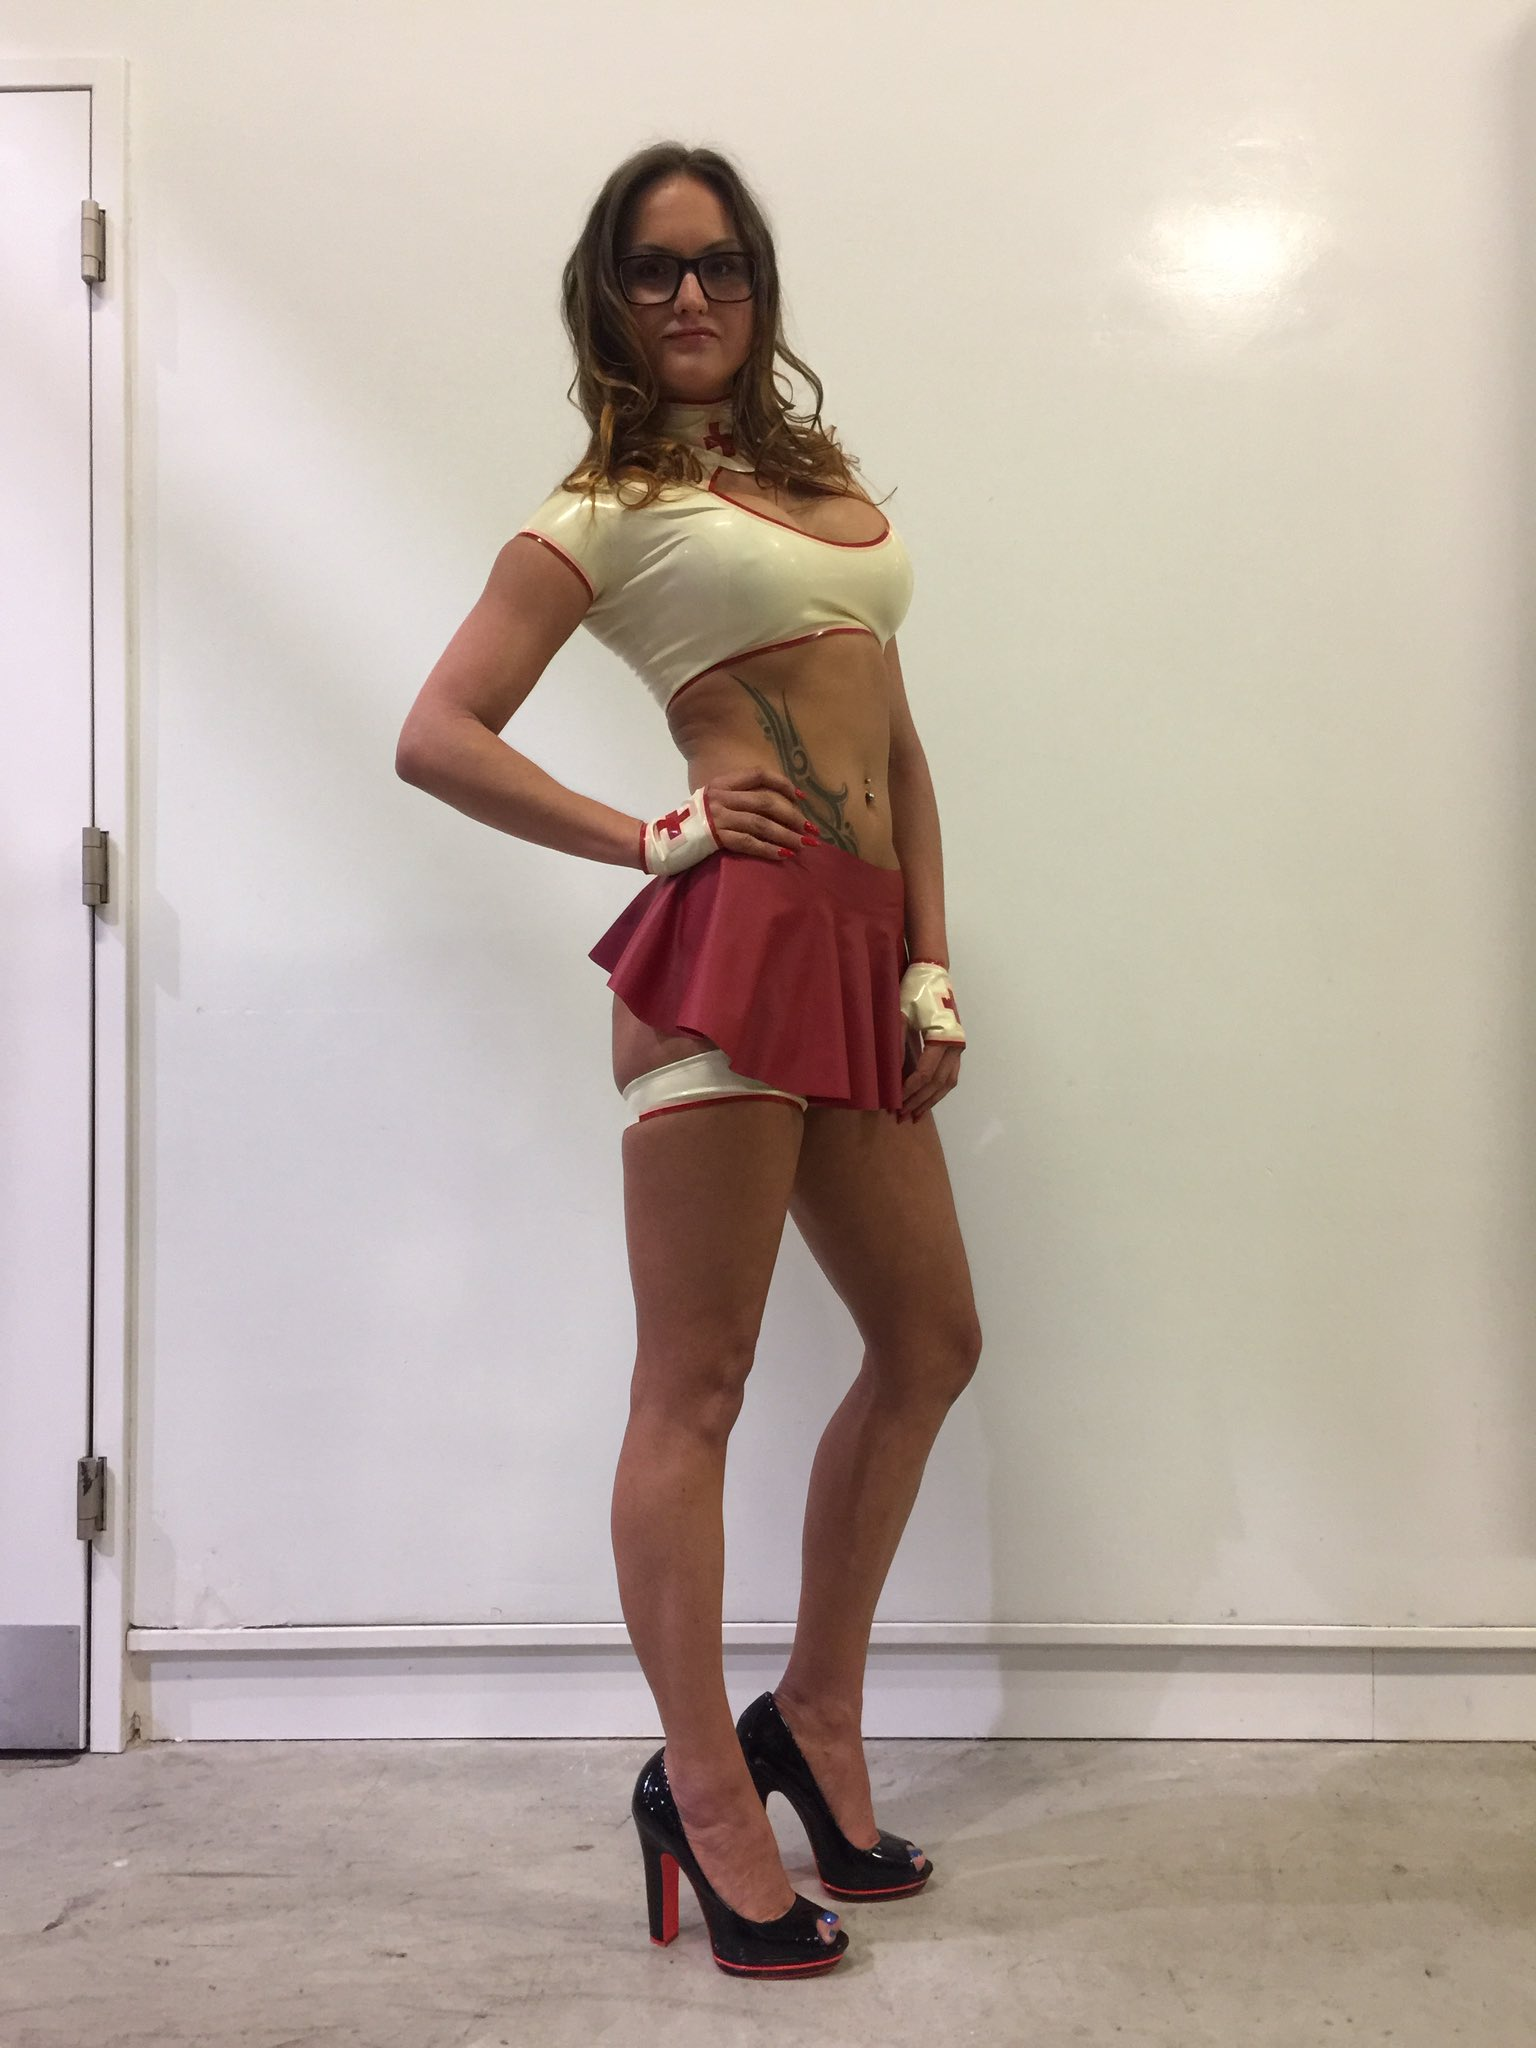 once i will make you cum with my sexy new pantyhose joi consider, that you